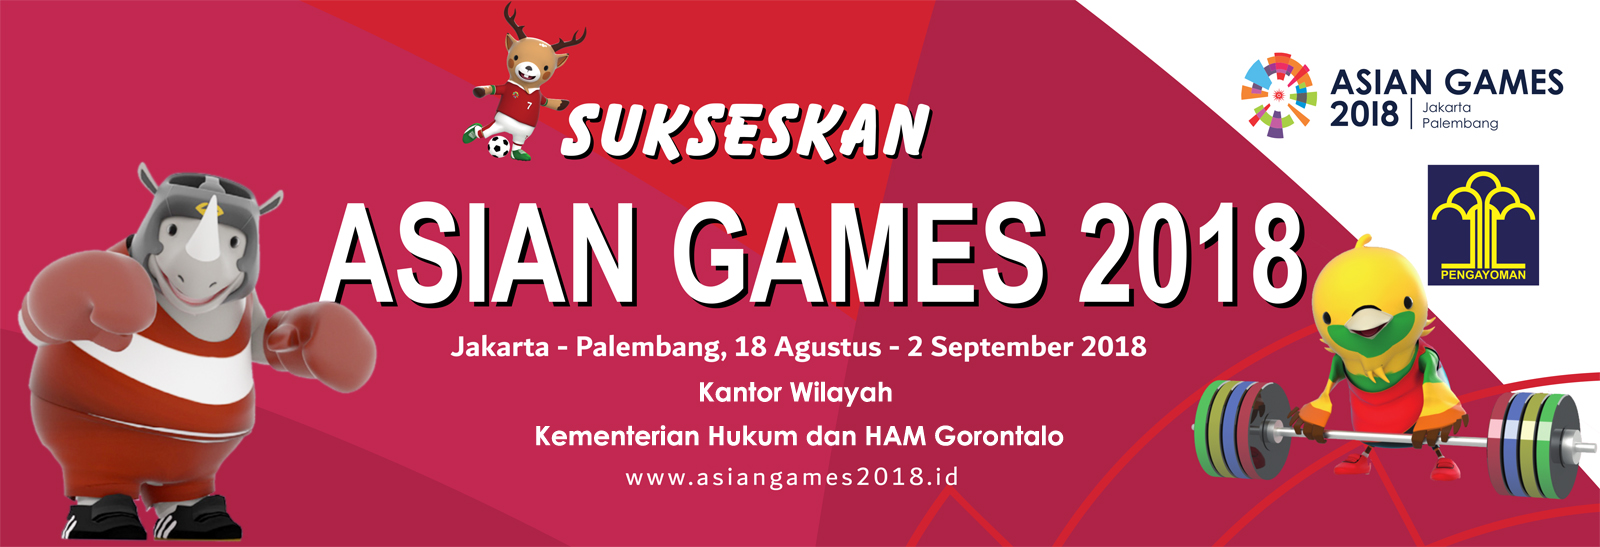 banner-asiangames-kanwil_gtlo